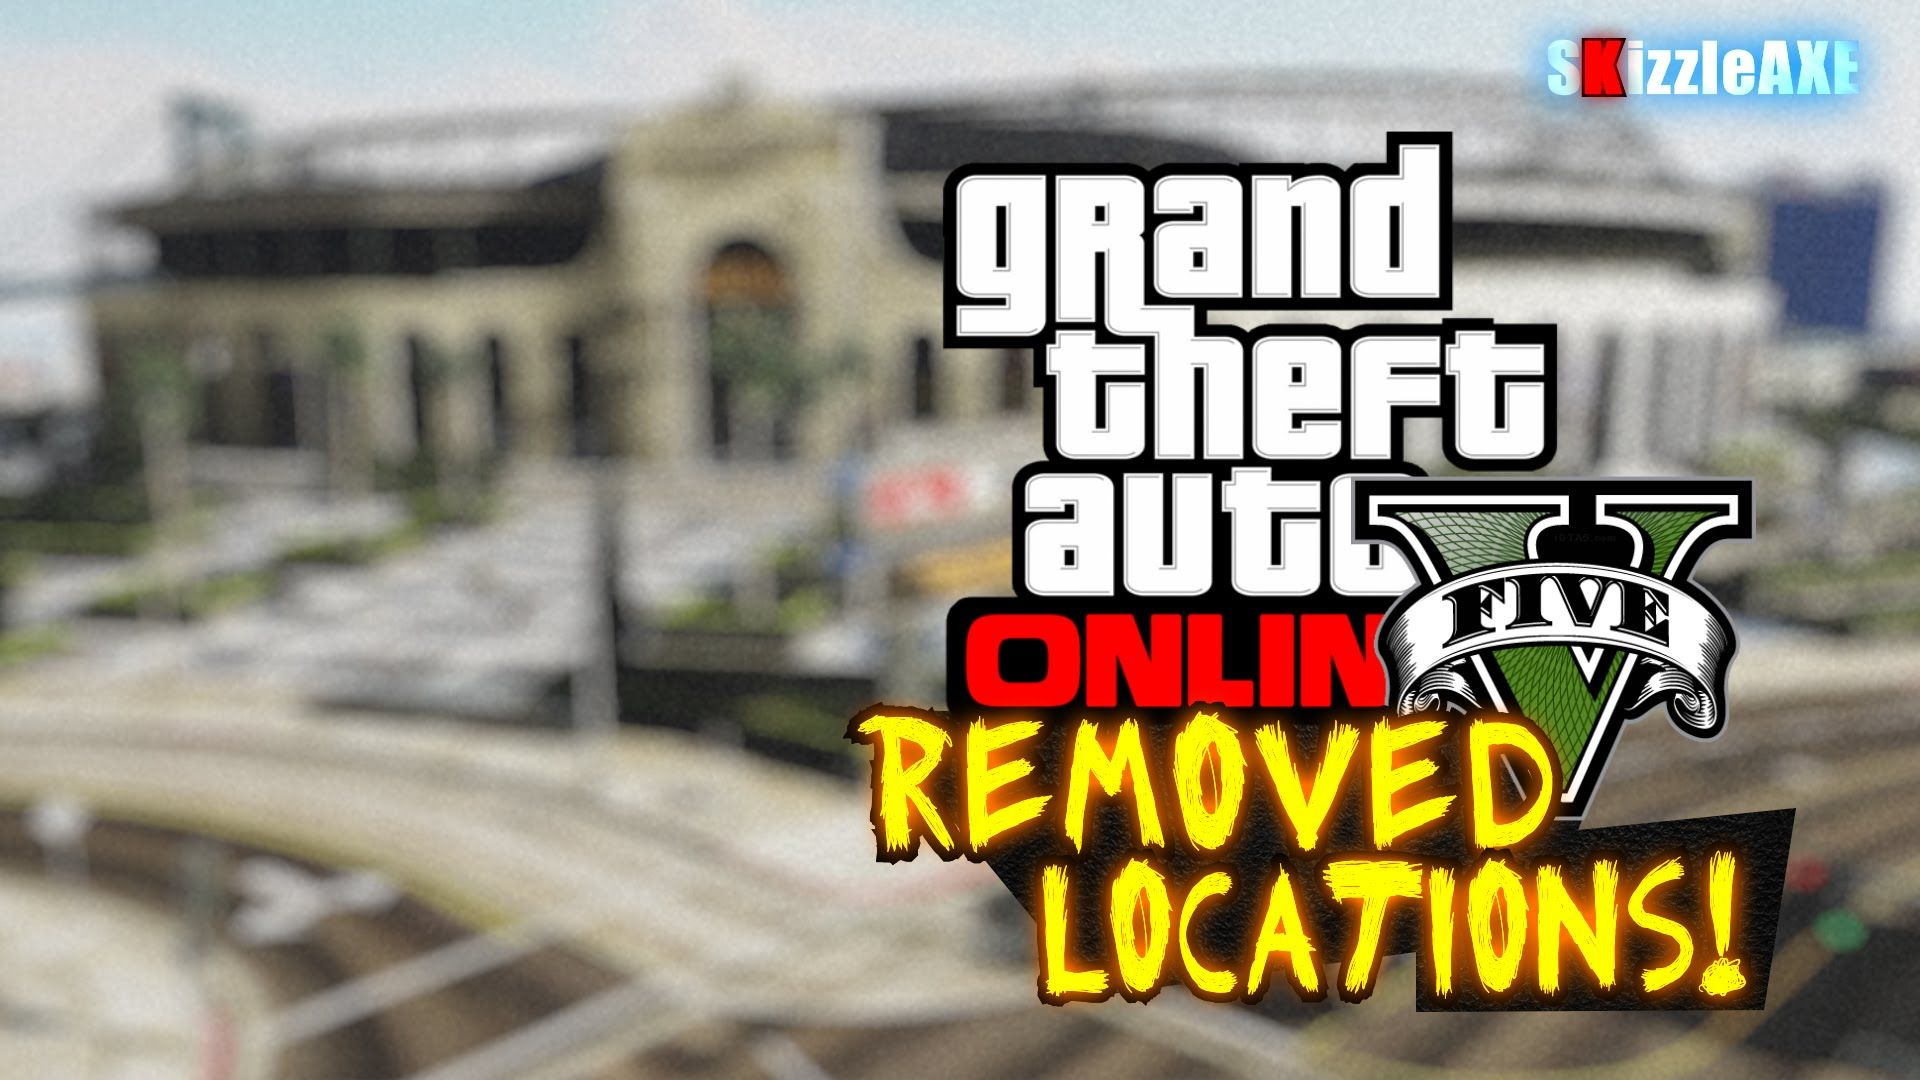 Gta 5 Maze Bank Arena Biker Bar Removed Locations In Gta Online Come With Gta 5 Online Dlc Update Gta Online Gta Gta 5